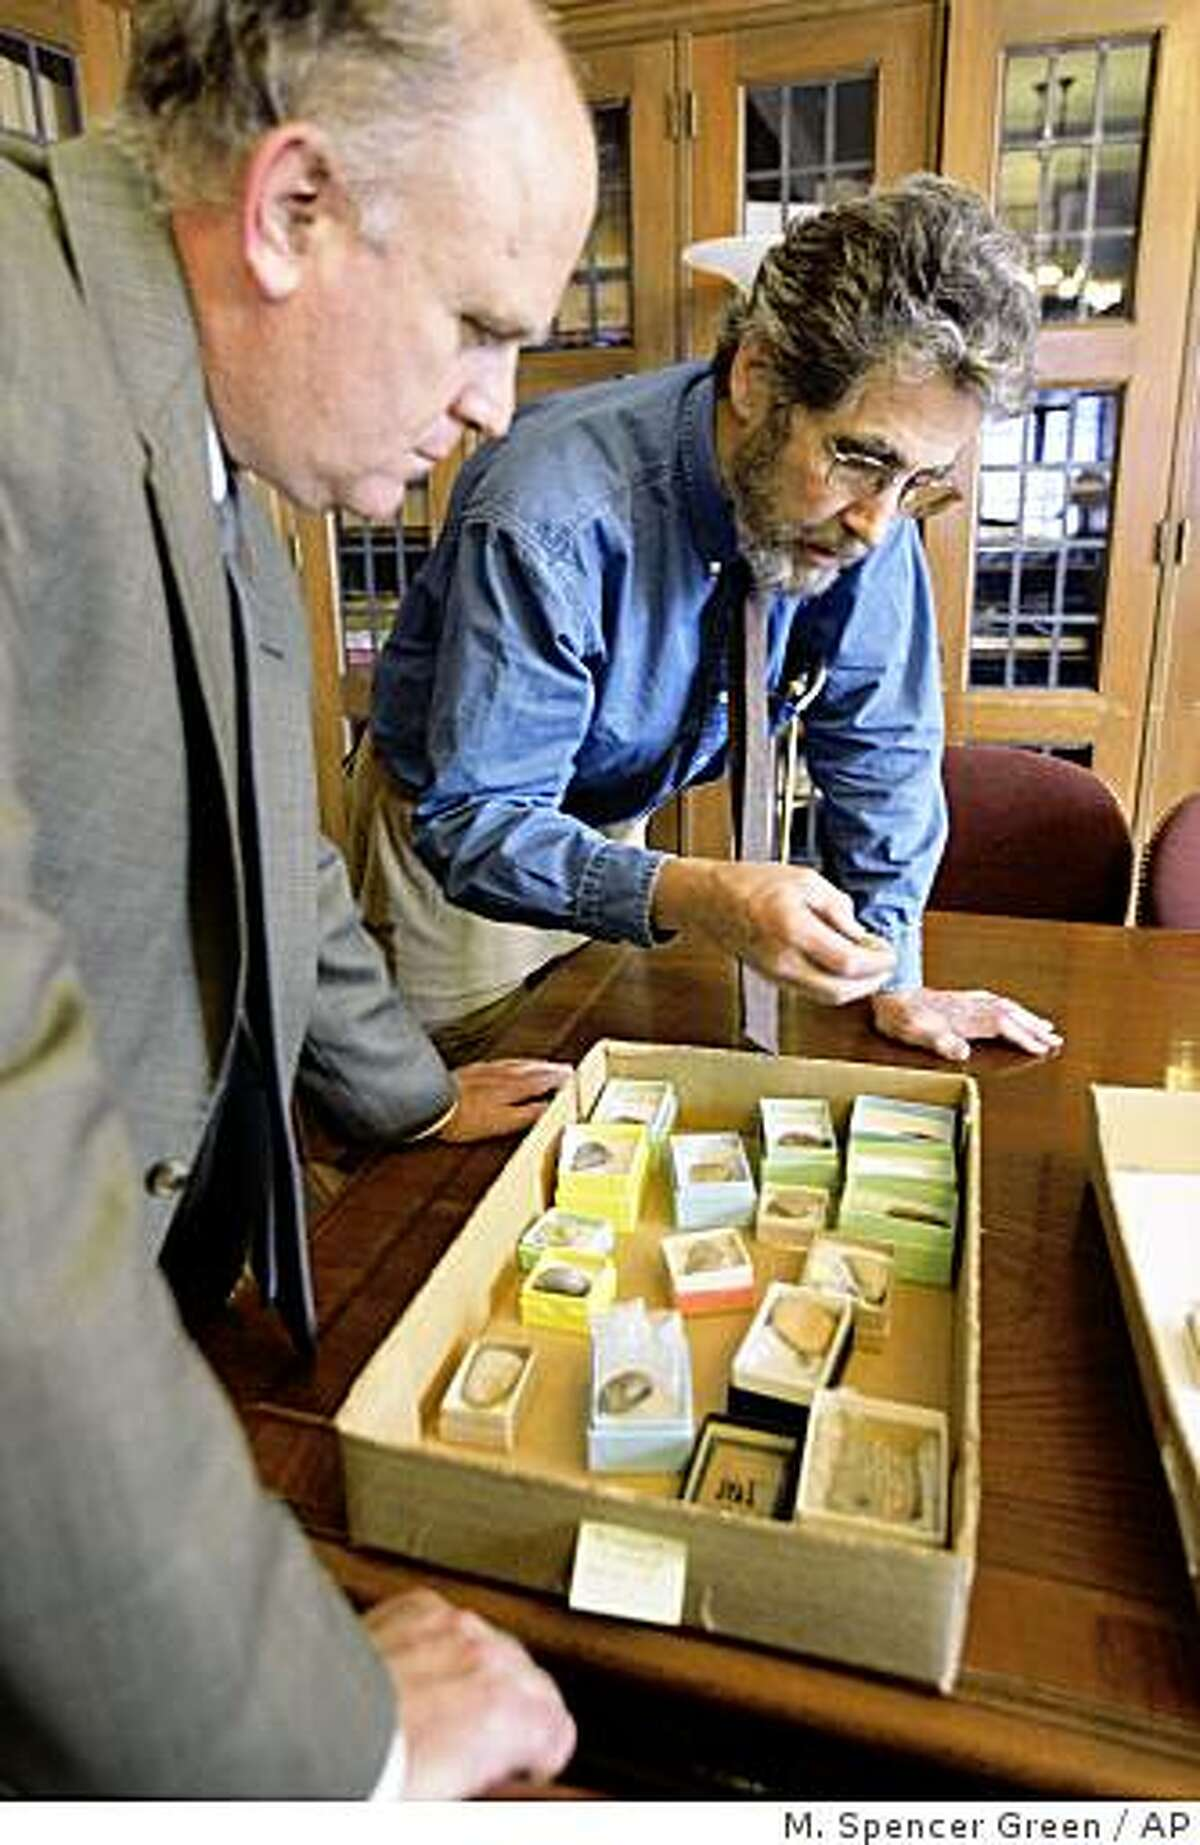 **ADVANCE FOR SUNDAY, FEB. 22** Gil Stein, director of the University of Chicago's Oriental Institute, left, and Matt Stolper, director of the Persepolis Fortification Archive, look over a selection of Aramaic tablets Oct. 16, 2008. The tablets are the subject of an unusual lawsuit. Victims of a terrorist bombing in Israel in 1997 won a multimillion judgment against Iran and are now trying to collect by seizing the tablets and selling them. (AP Photo/M. Spencer Green)